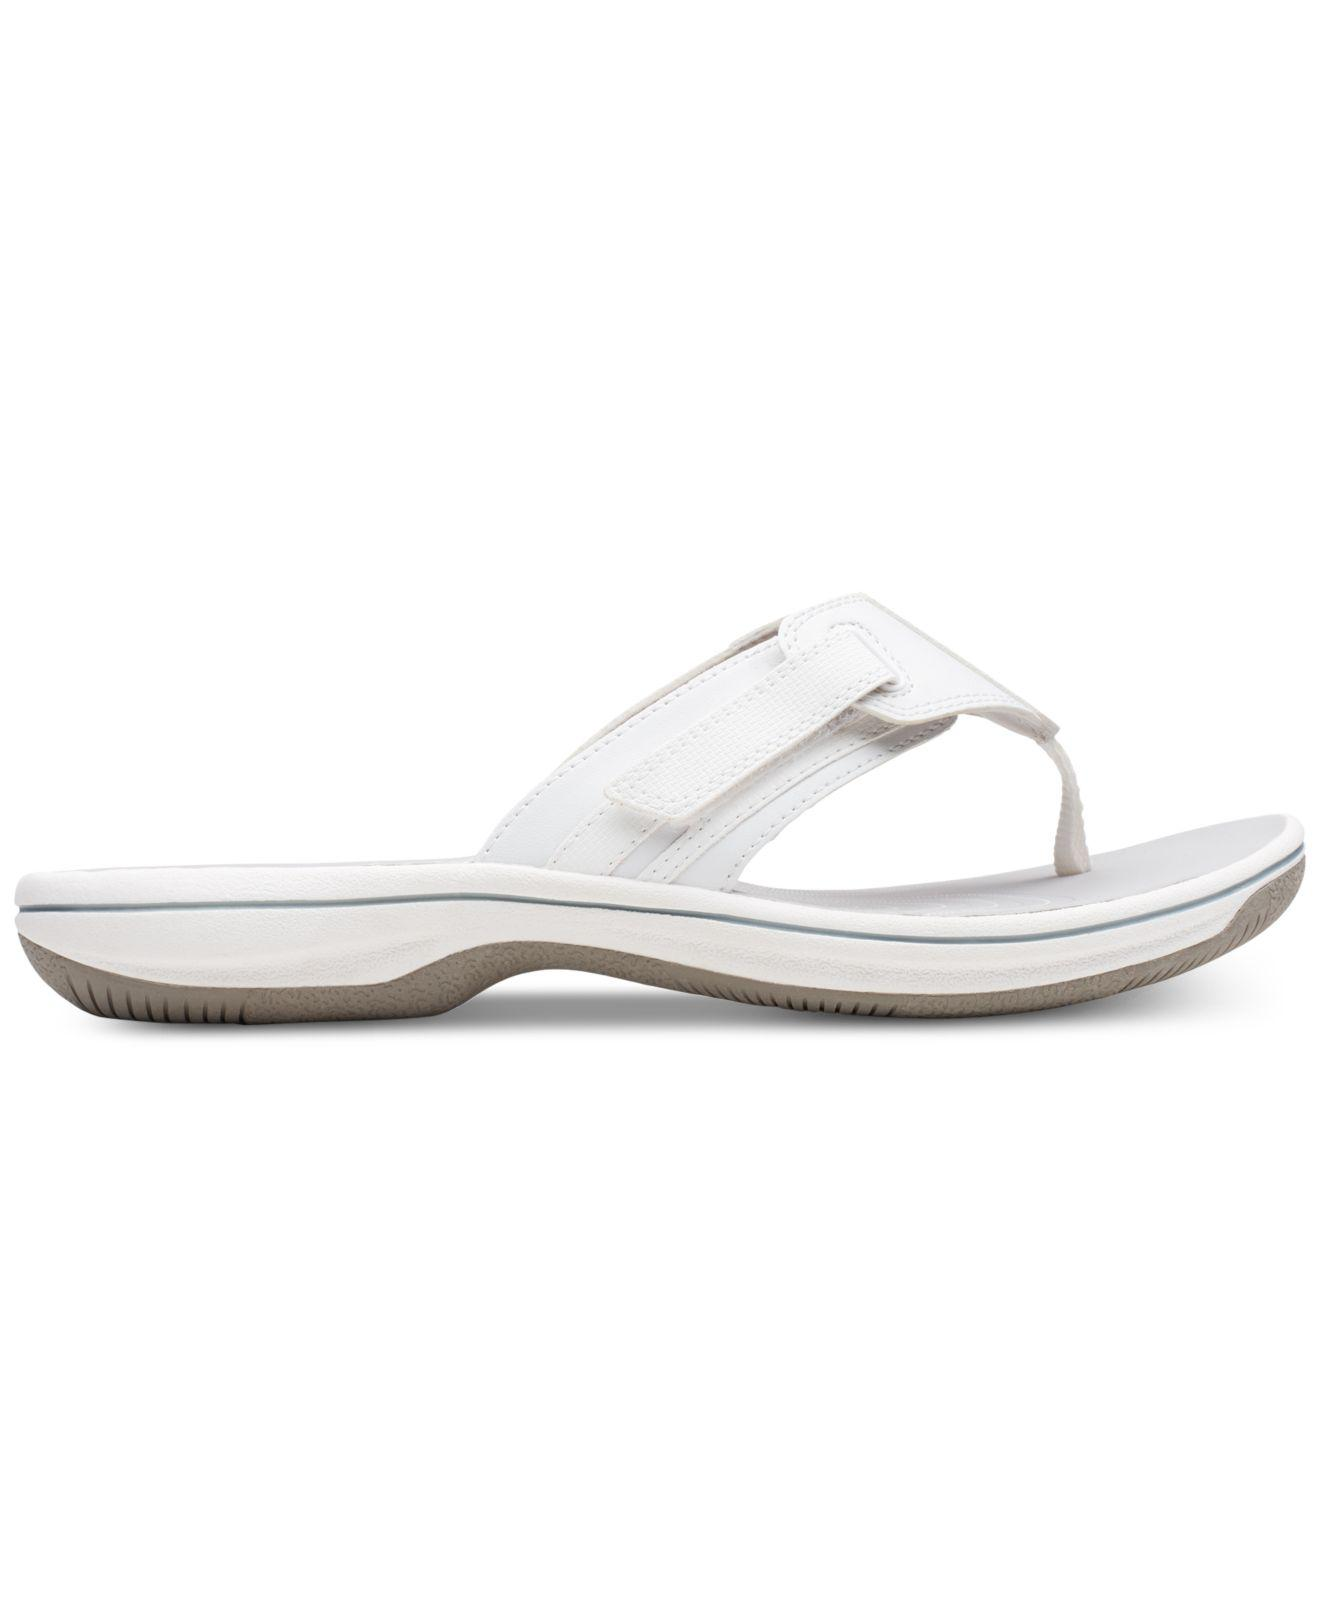 64e30a90394f Lyst - Clarks Women s Brinkley Bree Flip-flops in White - Save 60%